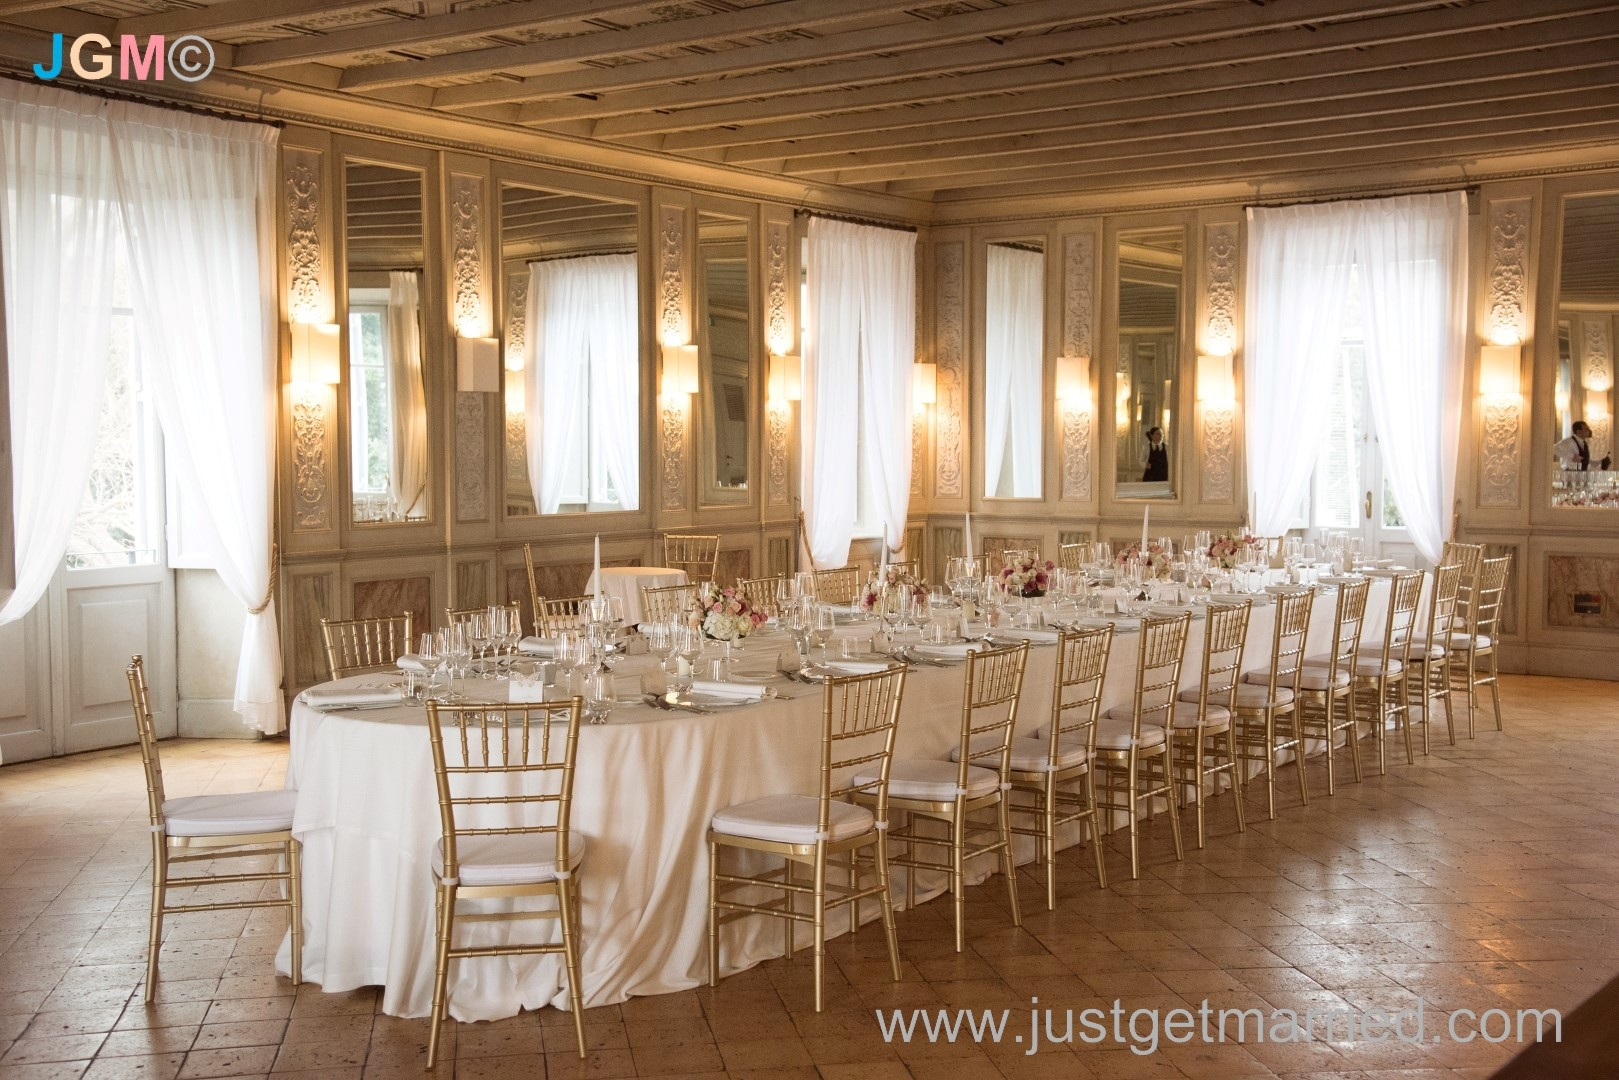 casina valadier mirror's hall rome italy events